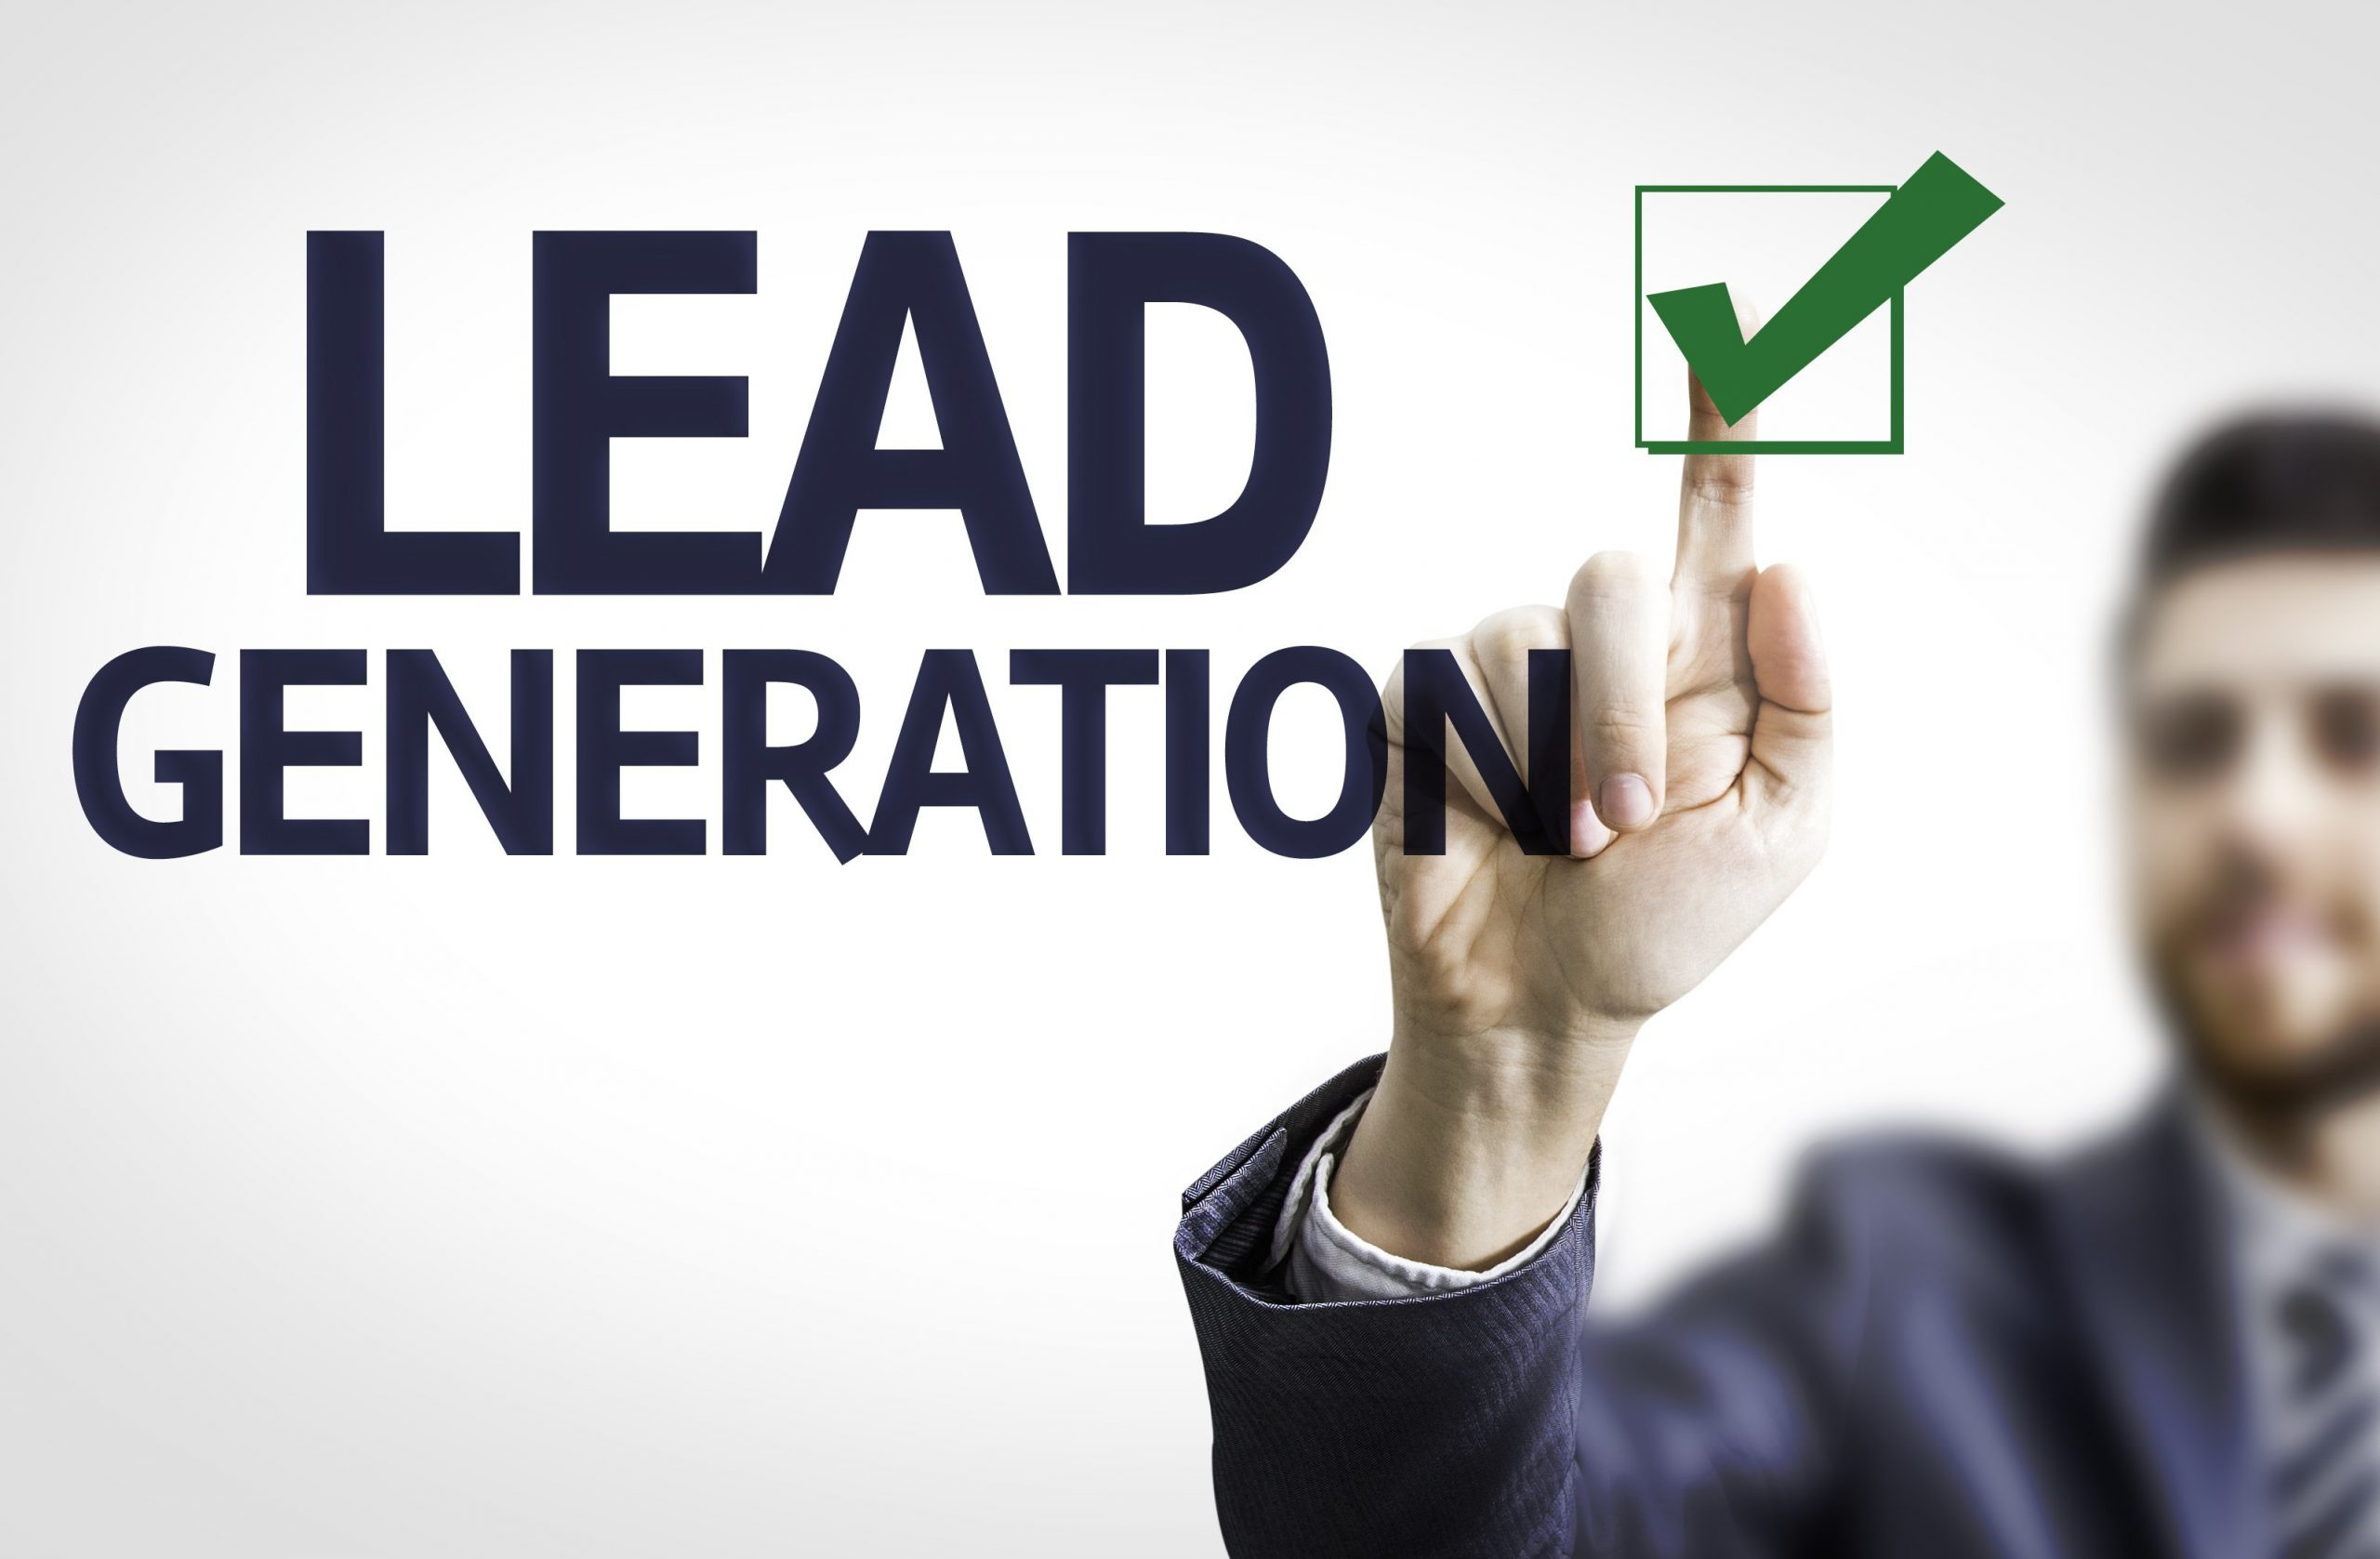 lead generation services in lucknow, Lead Generation